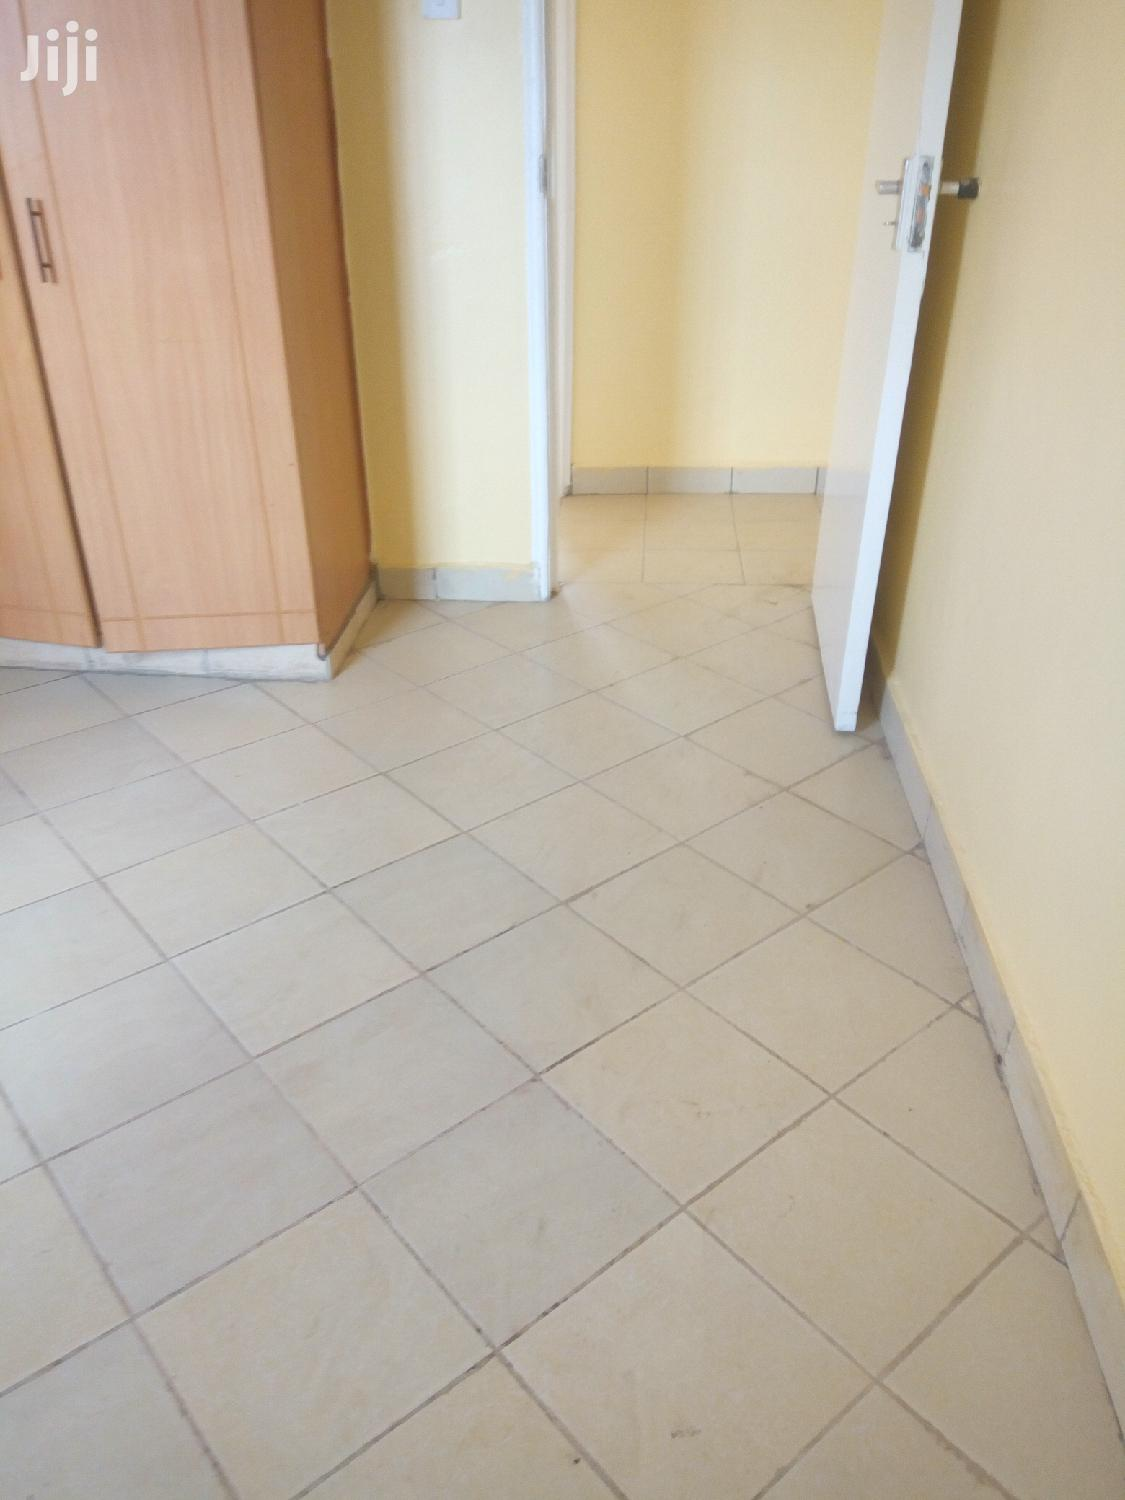 Executive 2 Bedroomed to Let in South B | Houses & Apartments For Rent for sale in South B (Makadara), Nairobi, Kenya